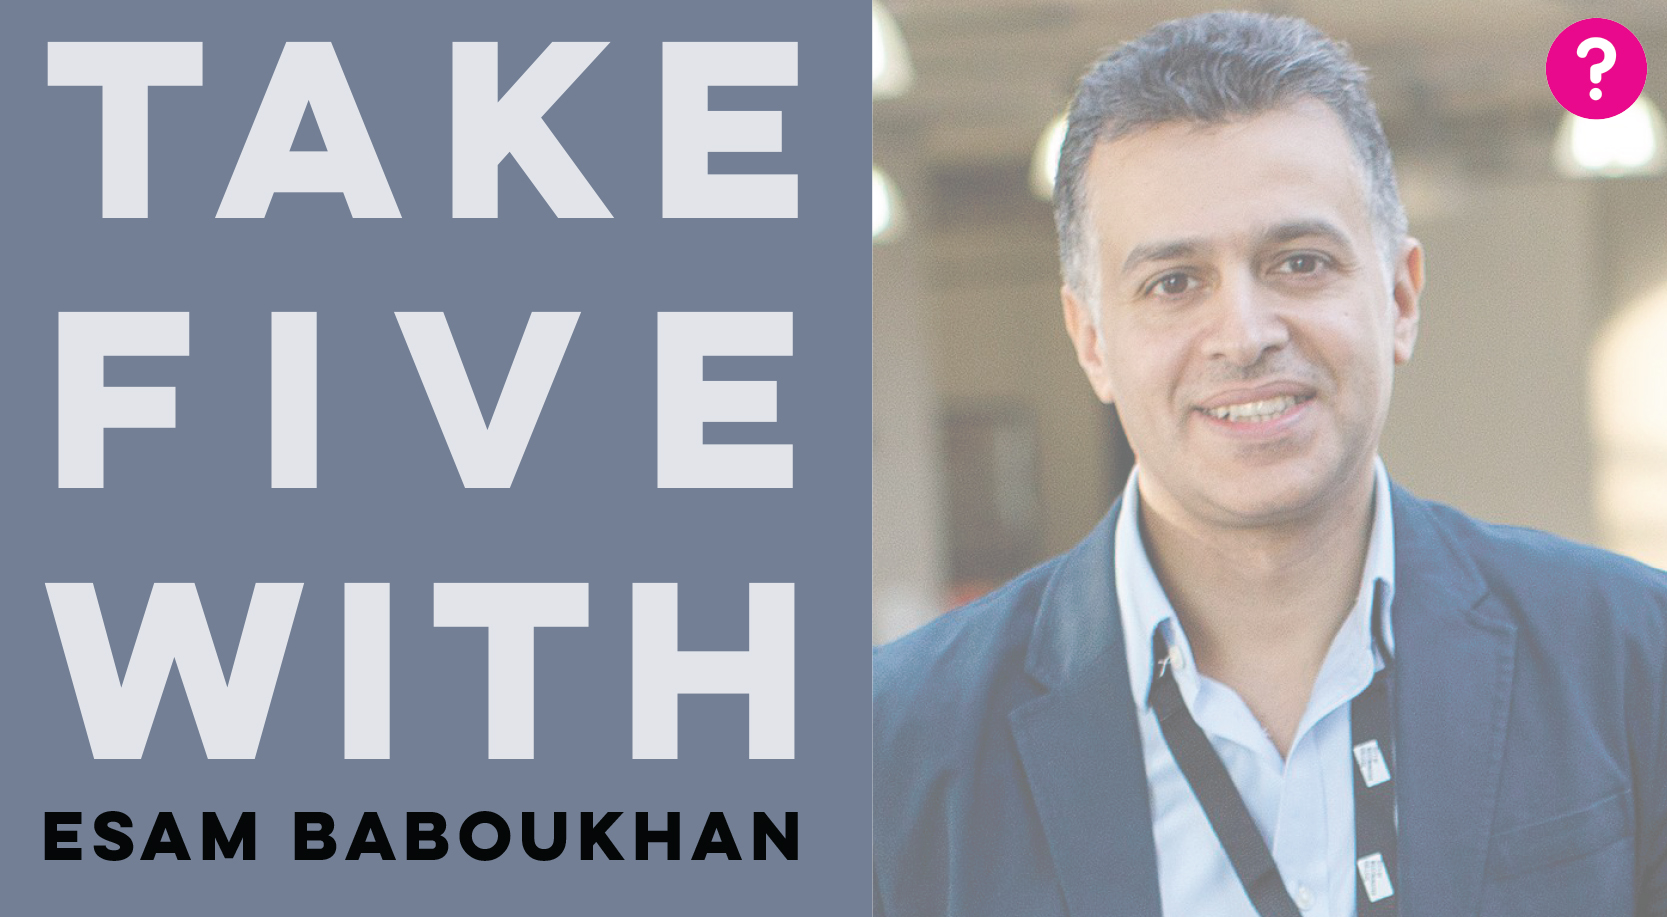 Take Five With Esam Baboukhan - image is a closeup of Esam smiling into the camera